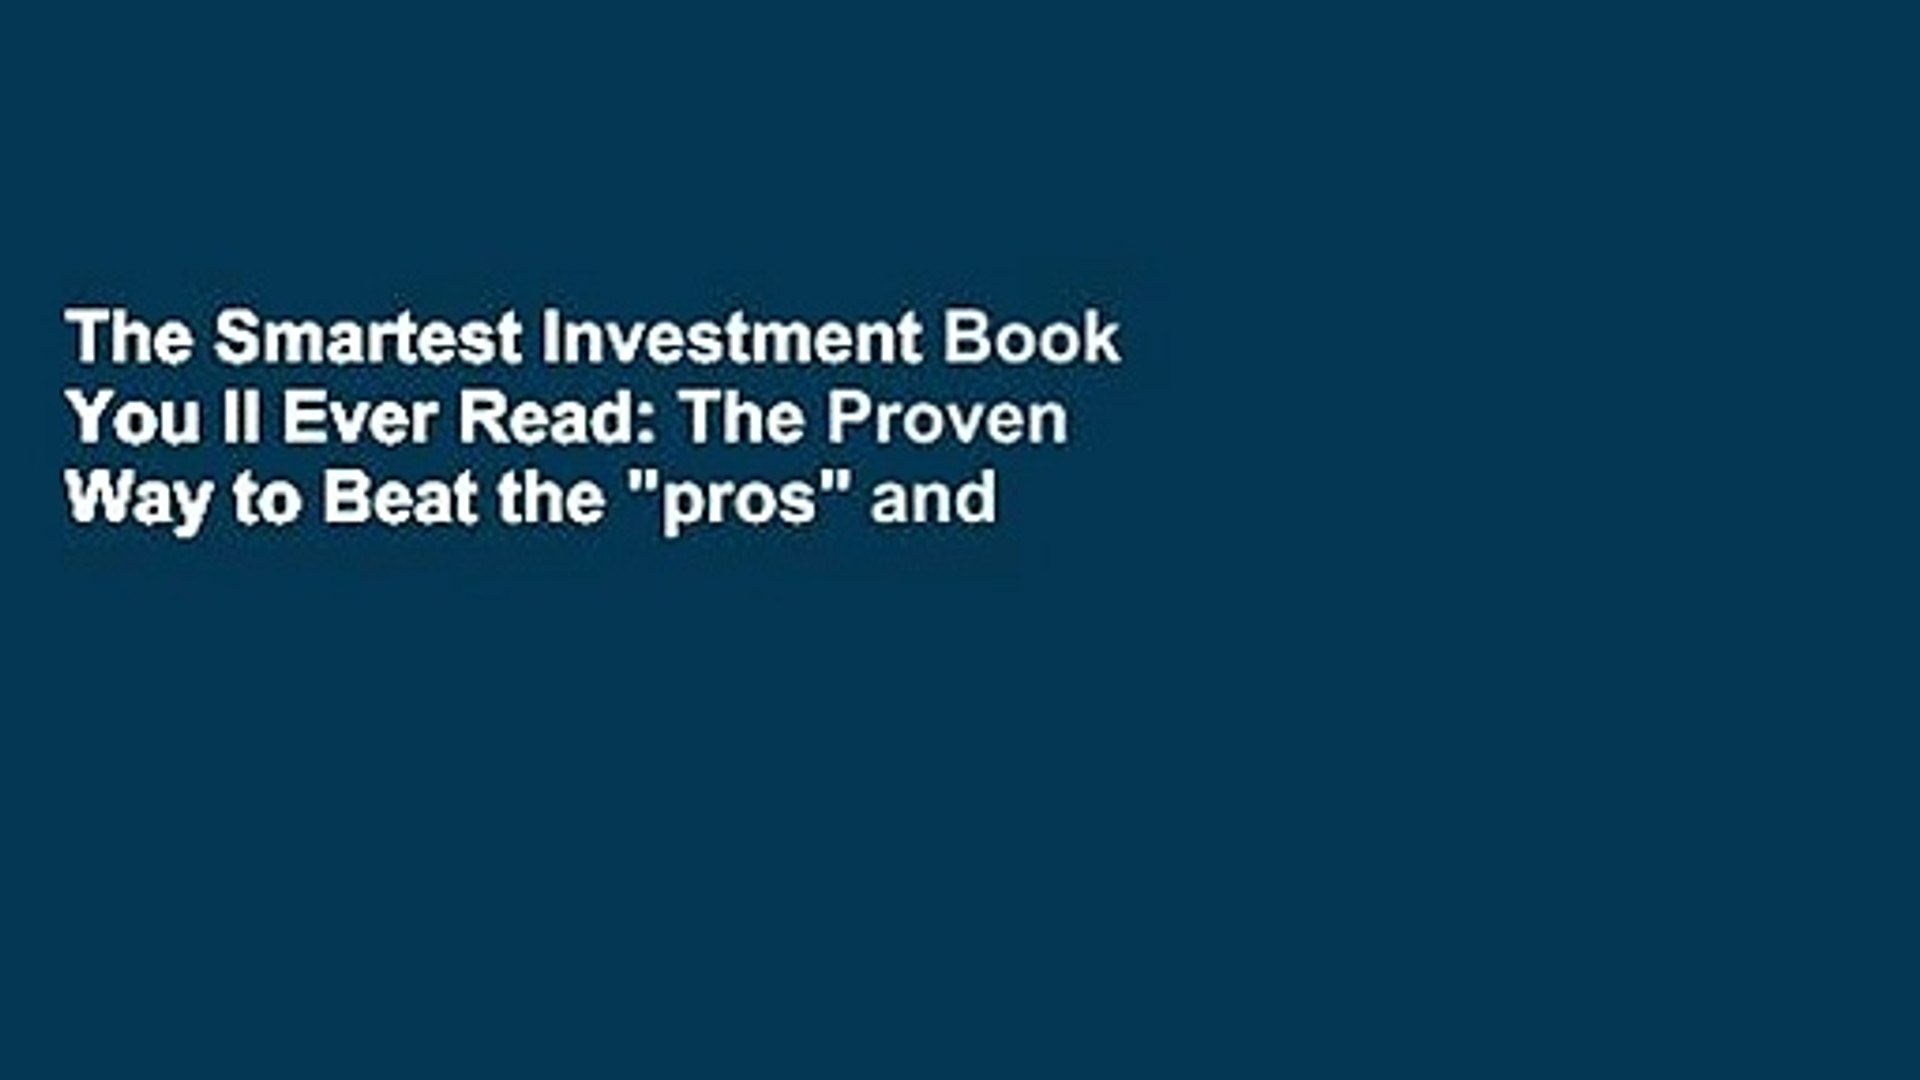 The Smartest Investment Book You ll Ever Read: The Proven Way to Beat the